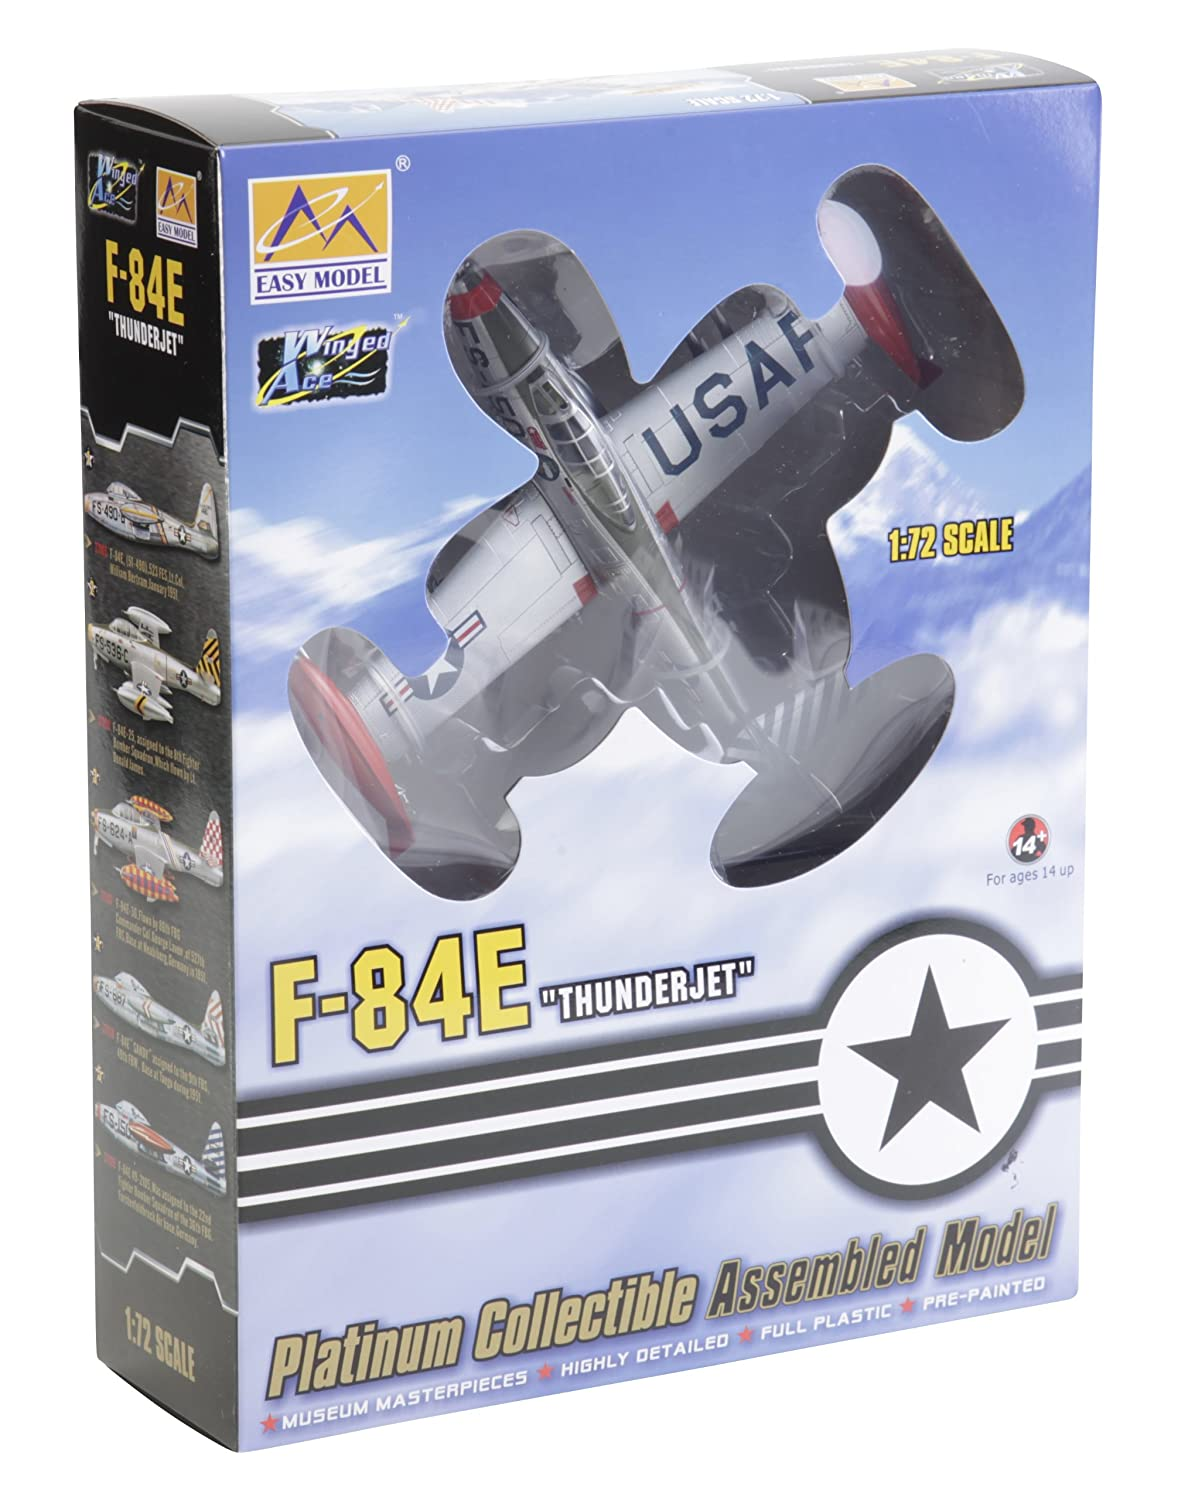 Facile modèle Echelle 1 : 72 'f-84e Thunderjet 22 ND Fighter Bomber SQN, délégations FBG, furstenf' modèle Kit